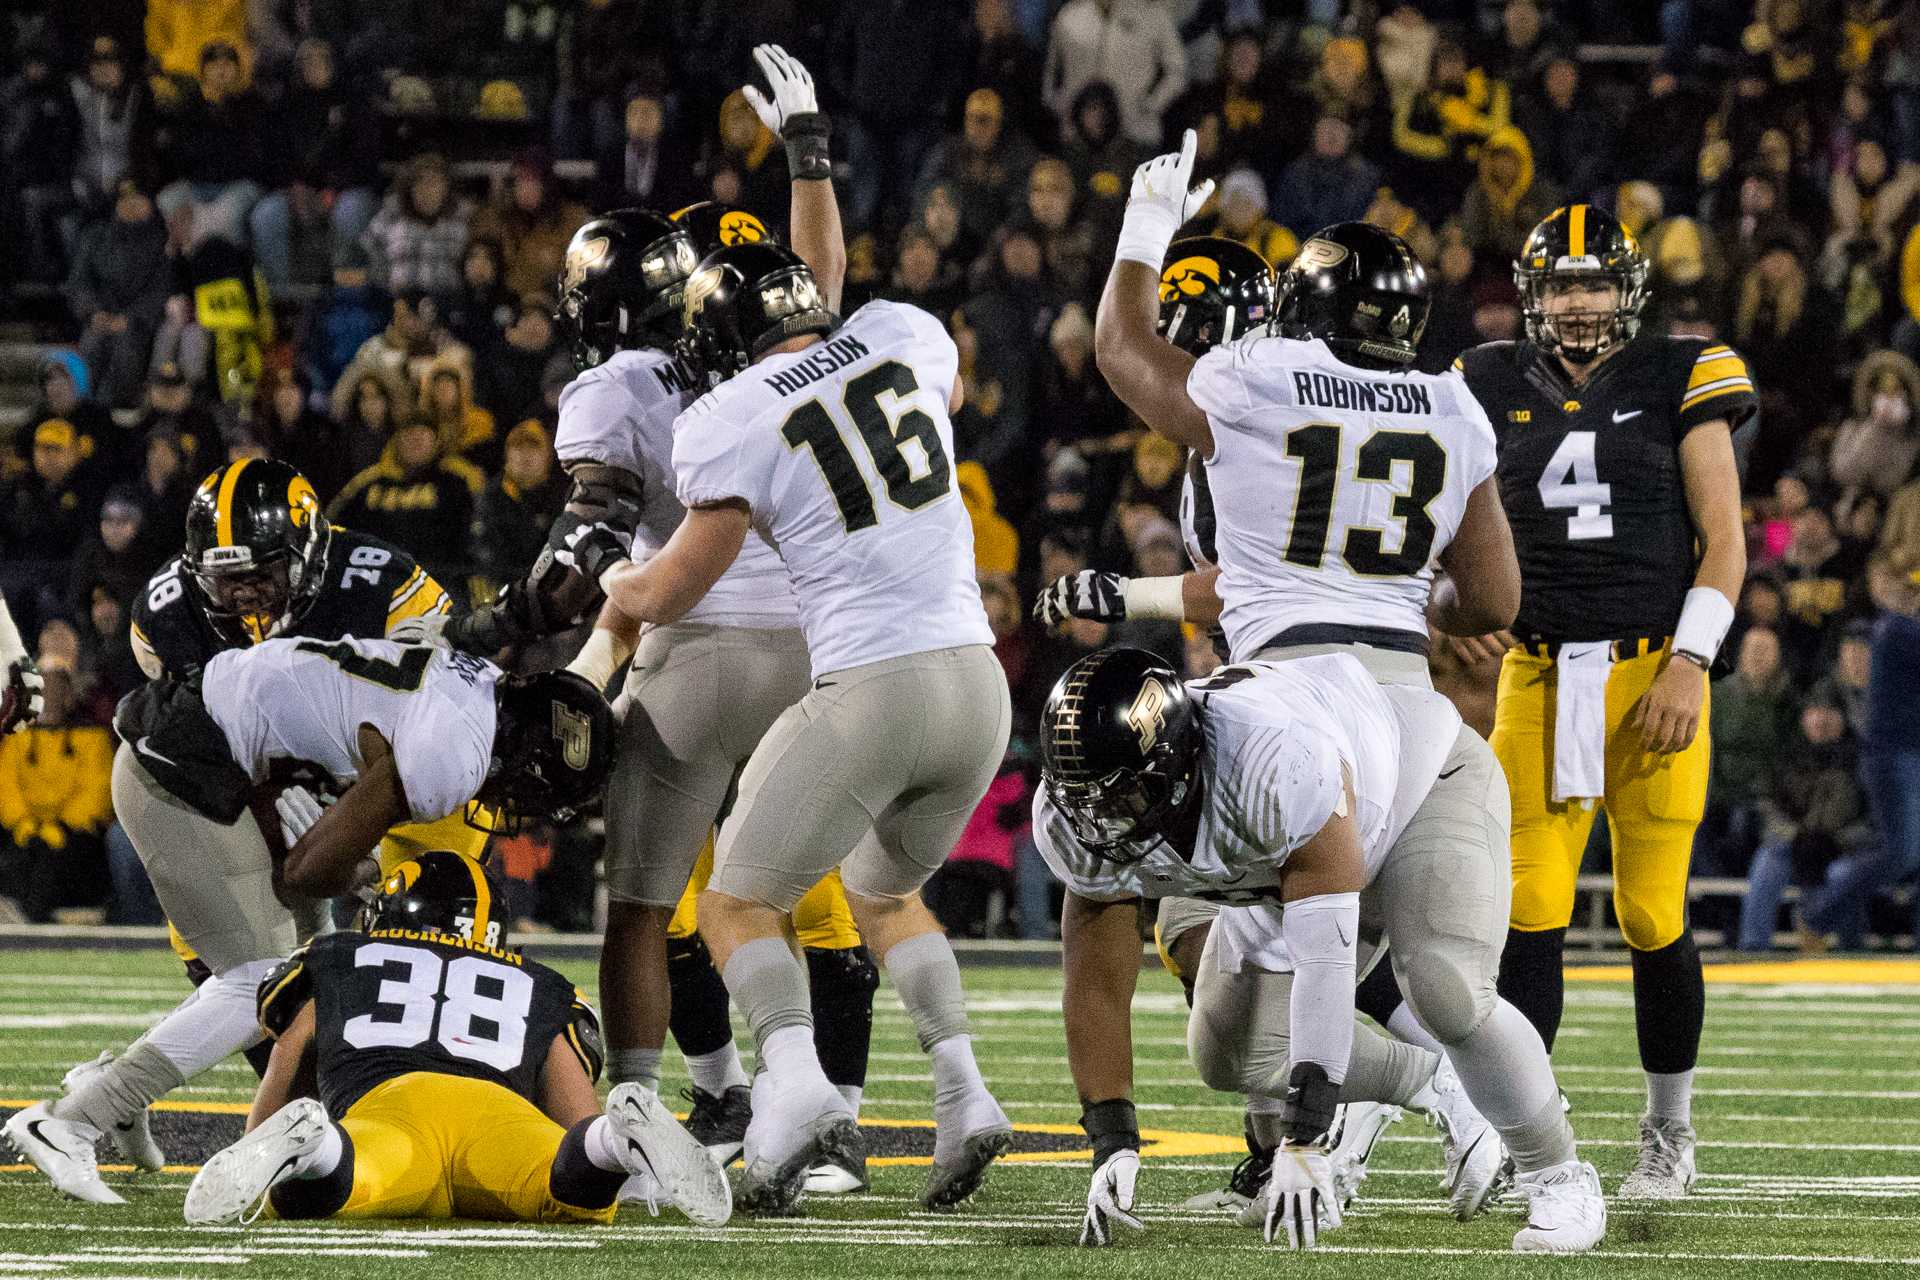 Iowa Quarterback Nate Stanley looks on as the Purdue defense celebrates recovering a fumble during a game on Saturday, Nov. 18, 2017. The Boilermakers defeated the Hawkeyes 24 to 15. (David Harmantas/The Daily Iowan)